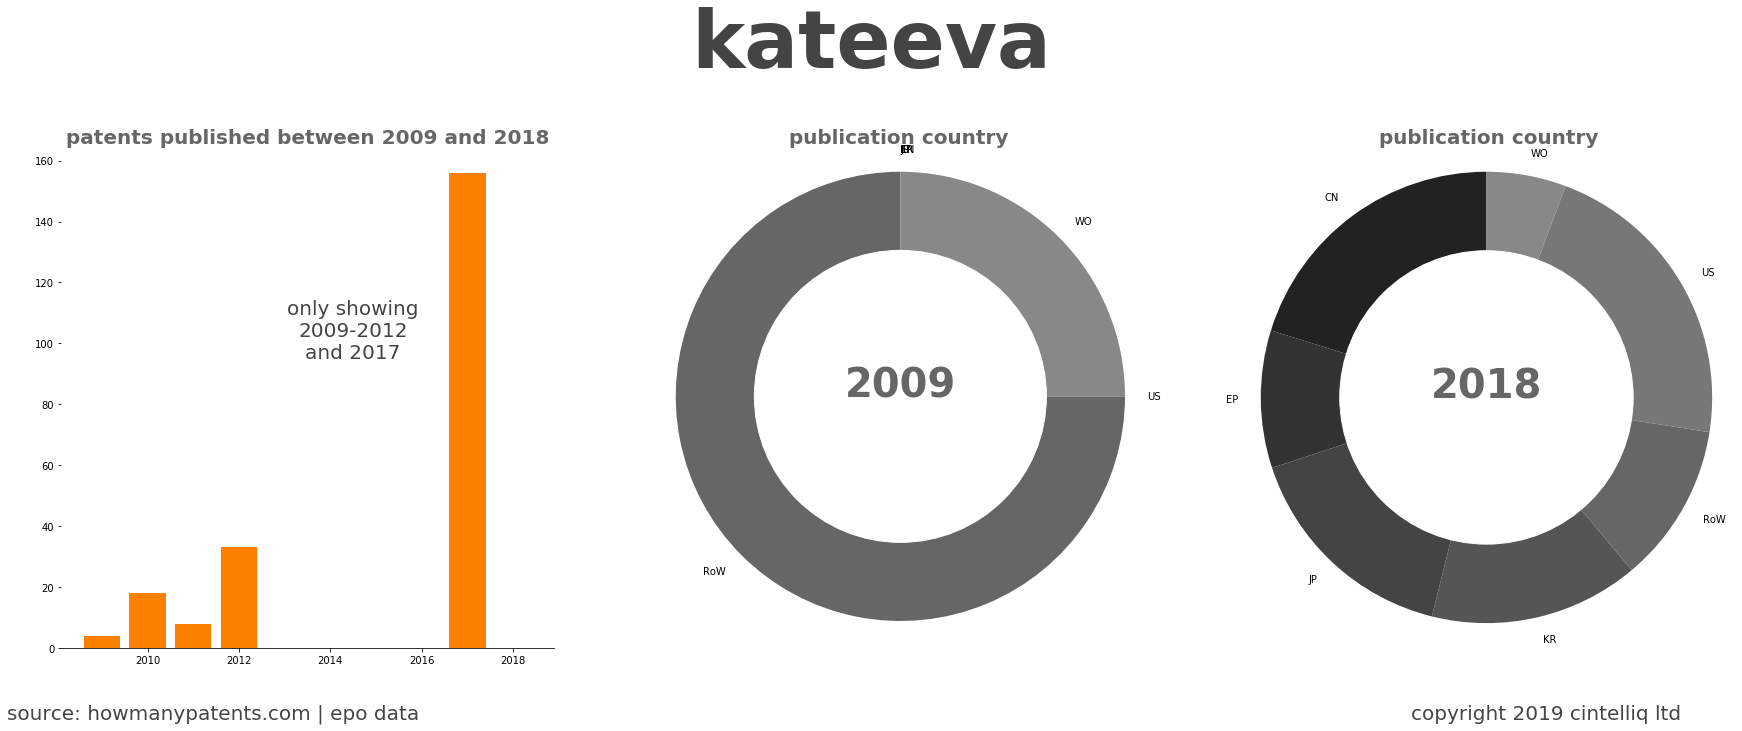 summary of patents for Kateeva